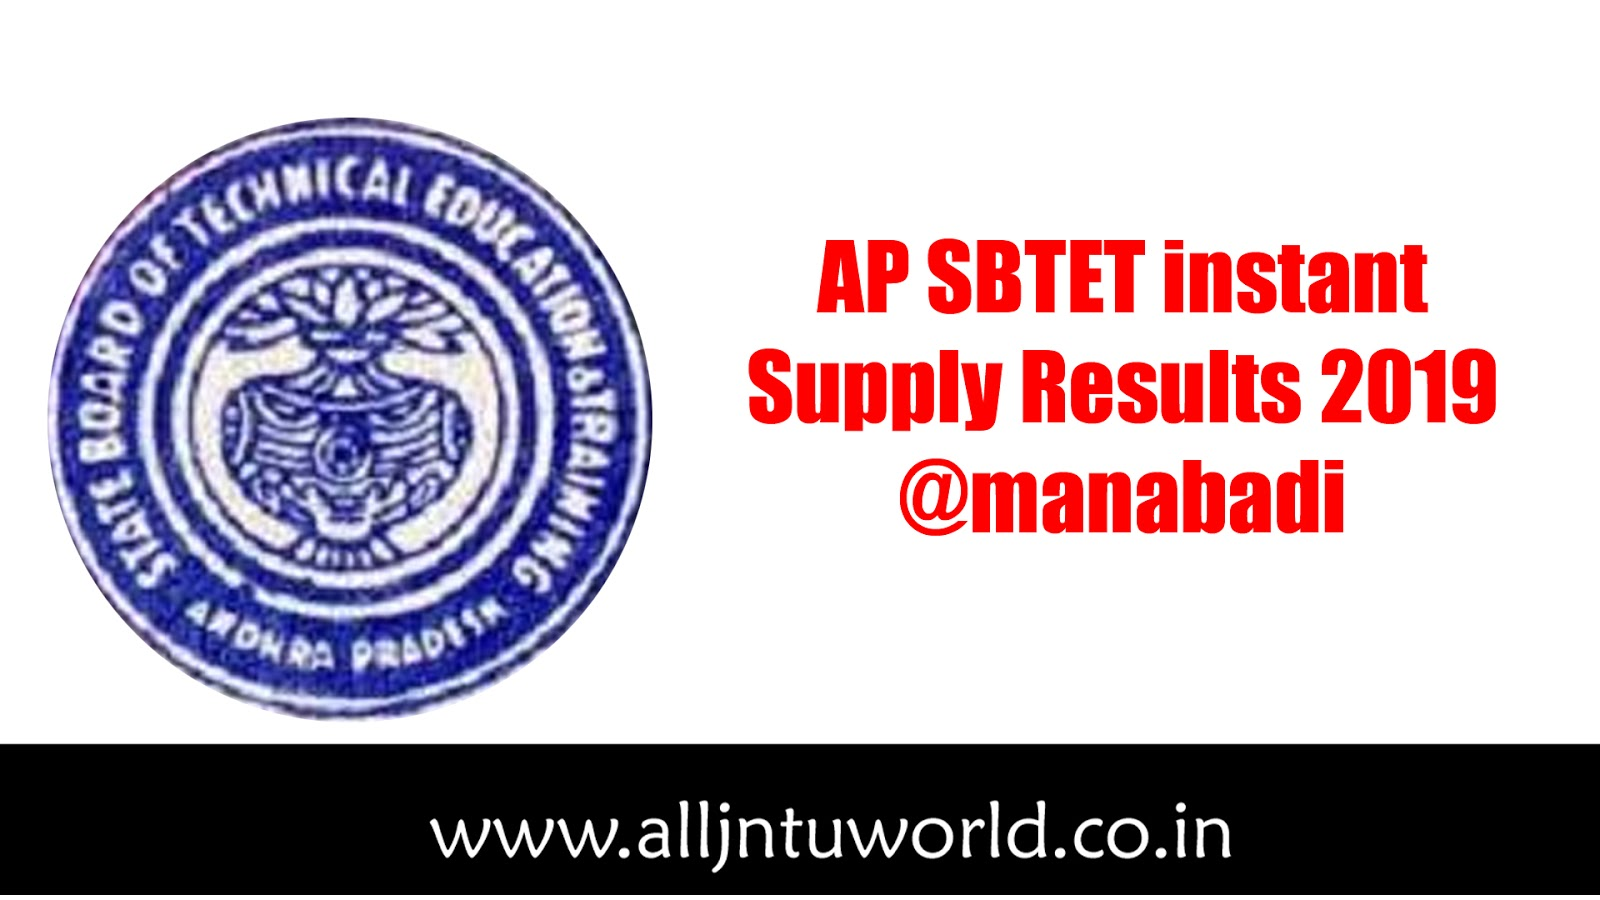 AP SBTET instant Supply Results (Released) 2019 @manabadi